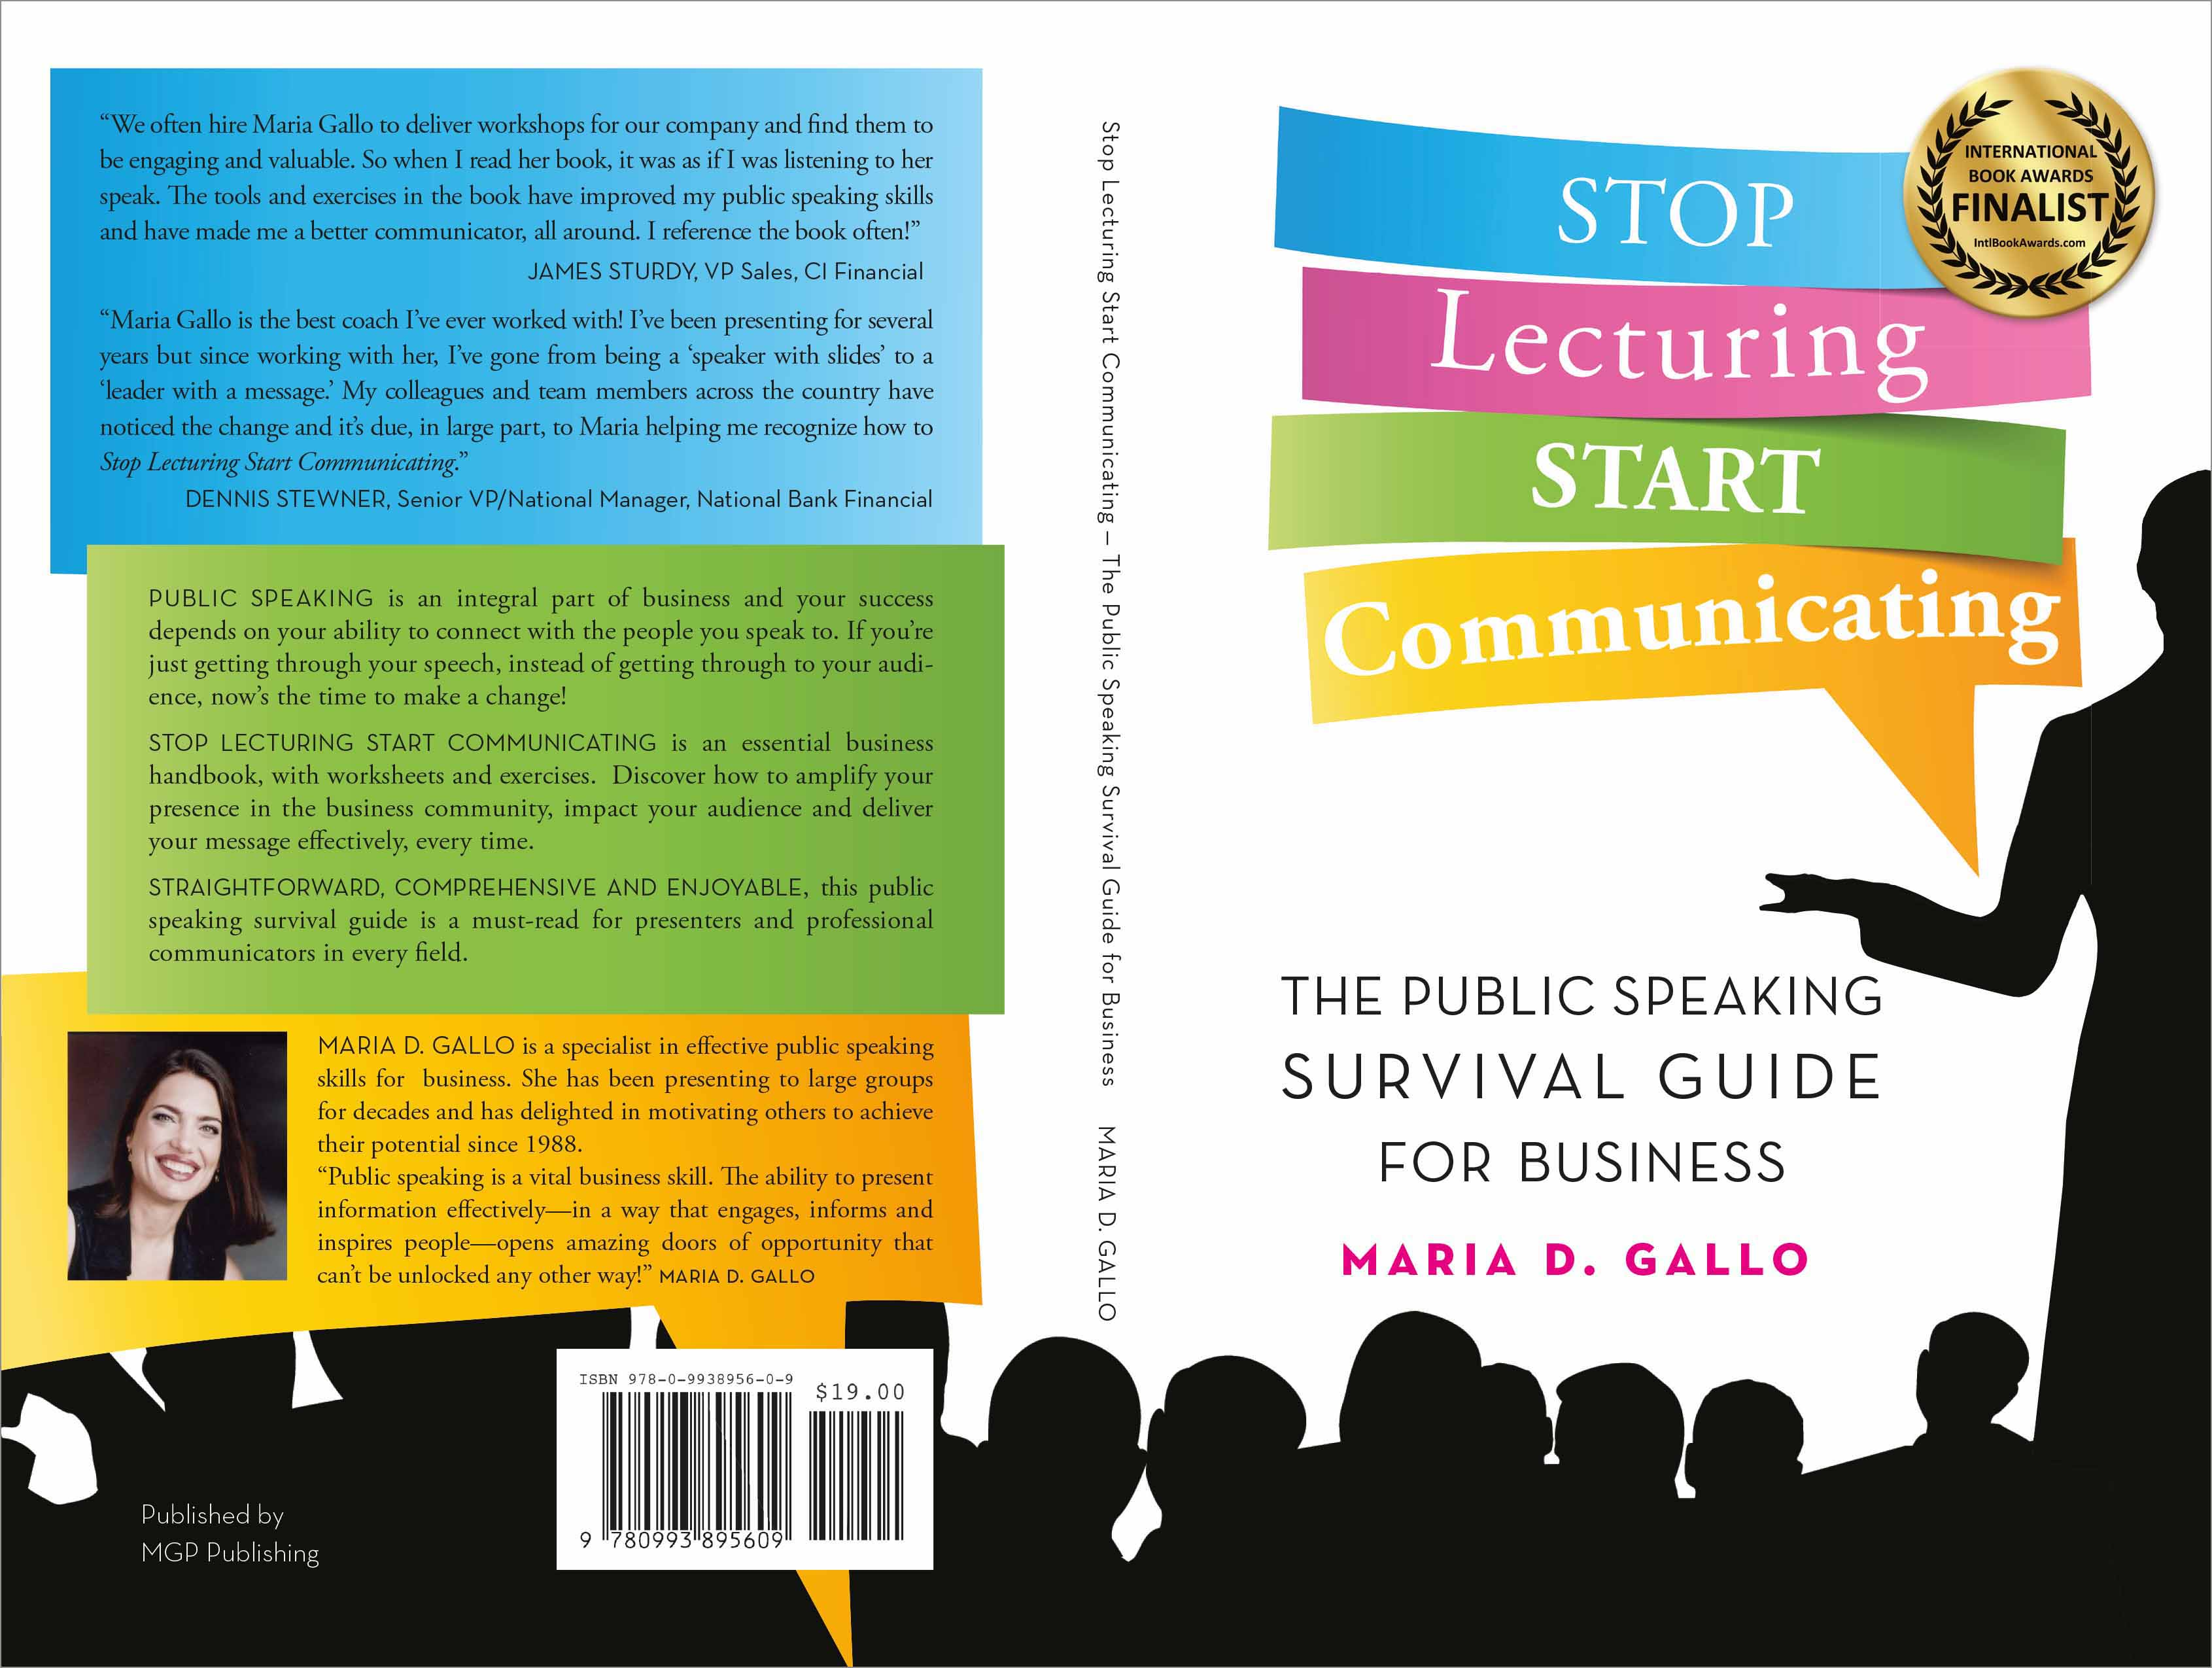 Stop Lecturing Start Communicating